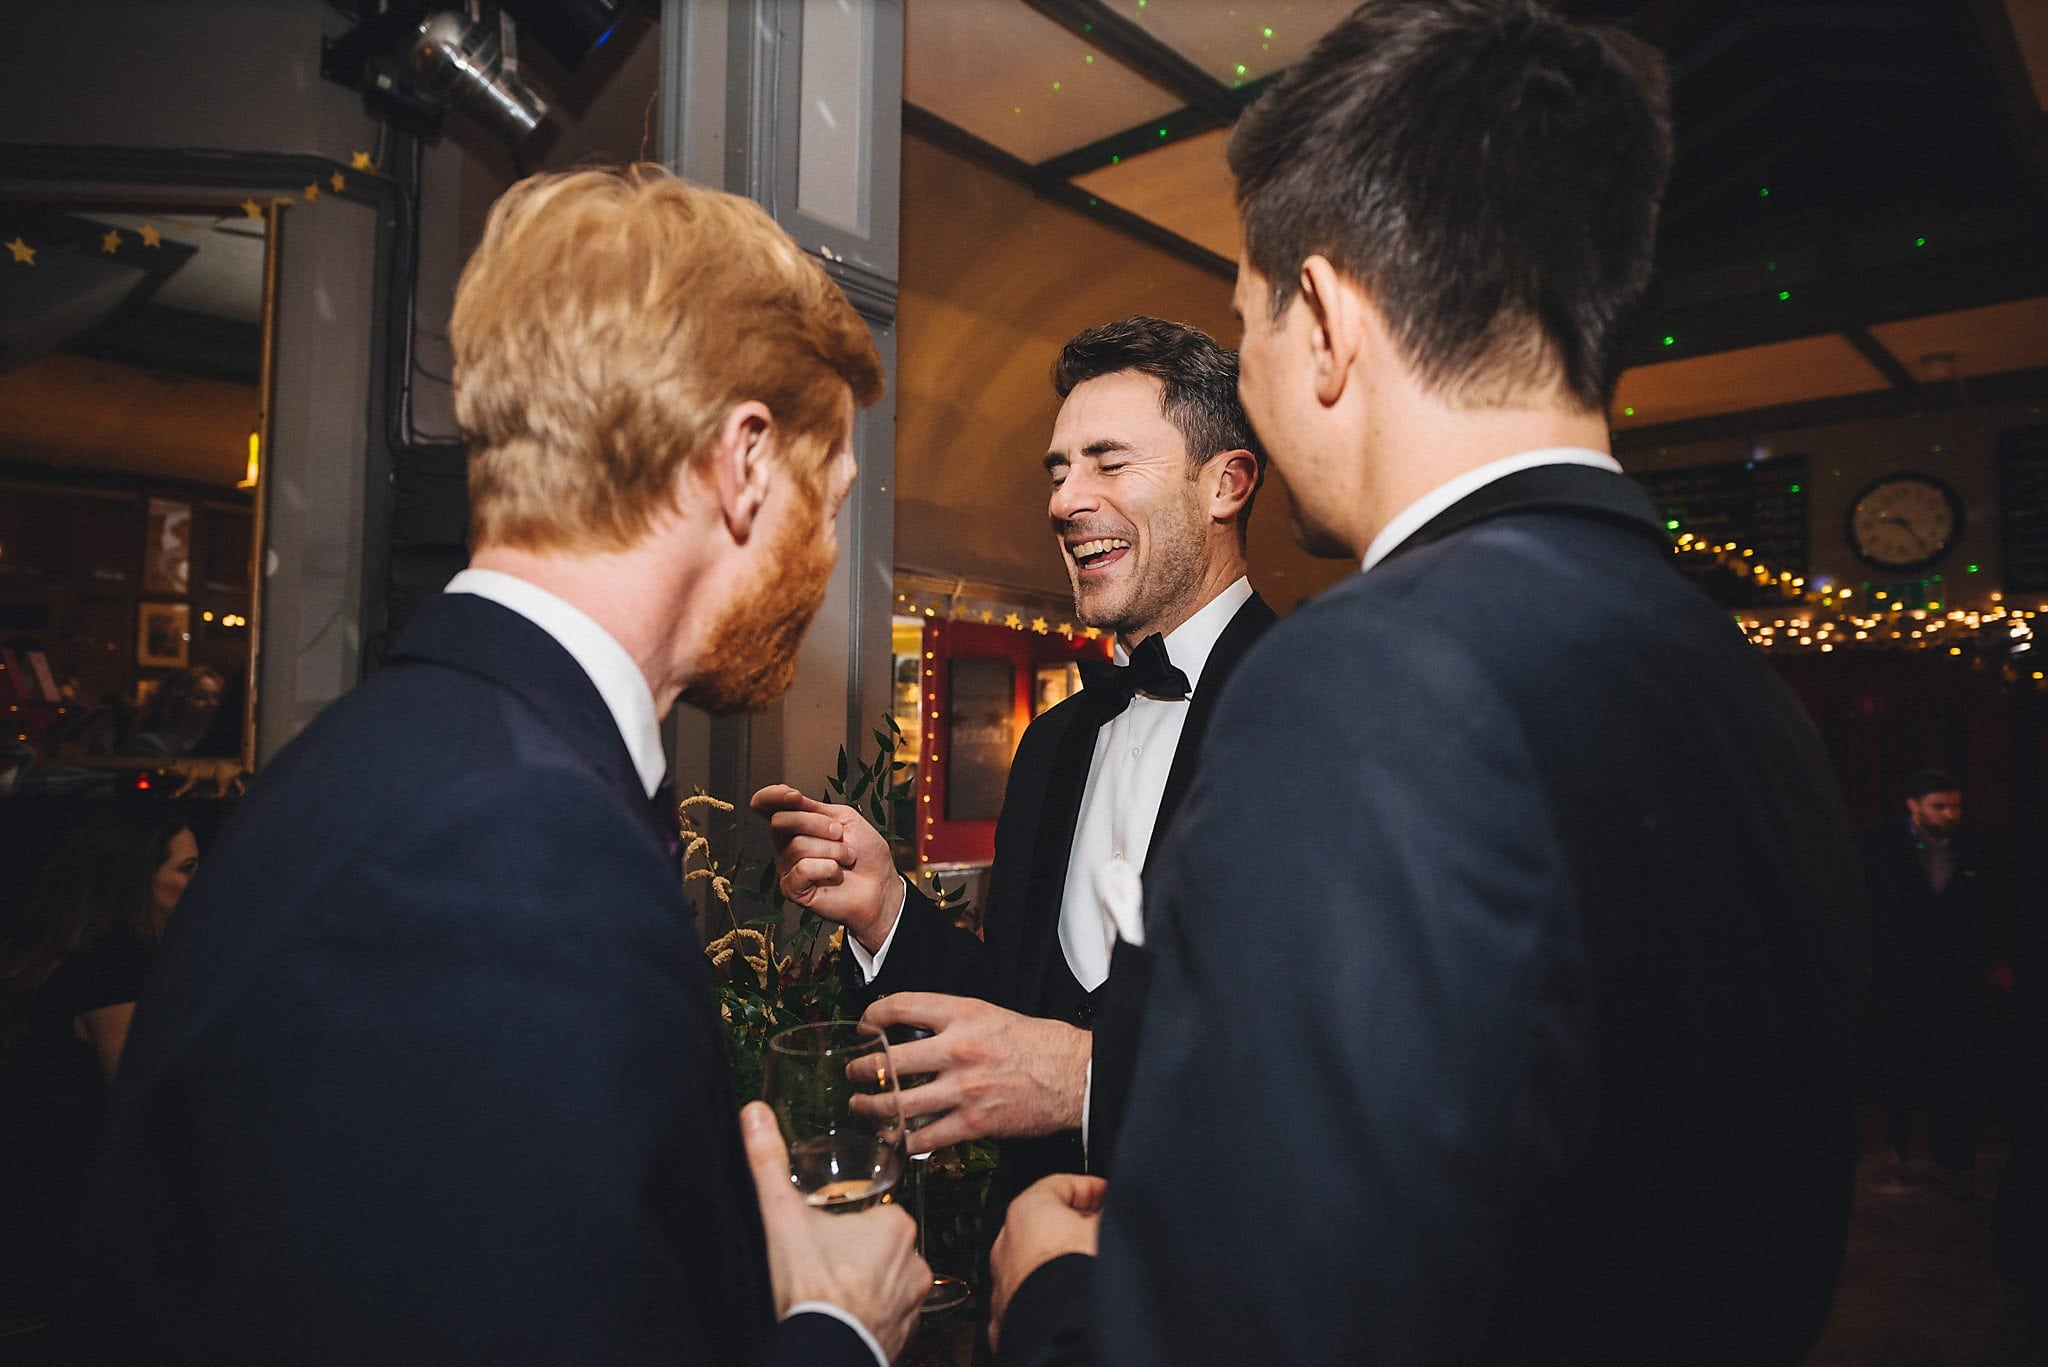 Groom laughing with guests at reception